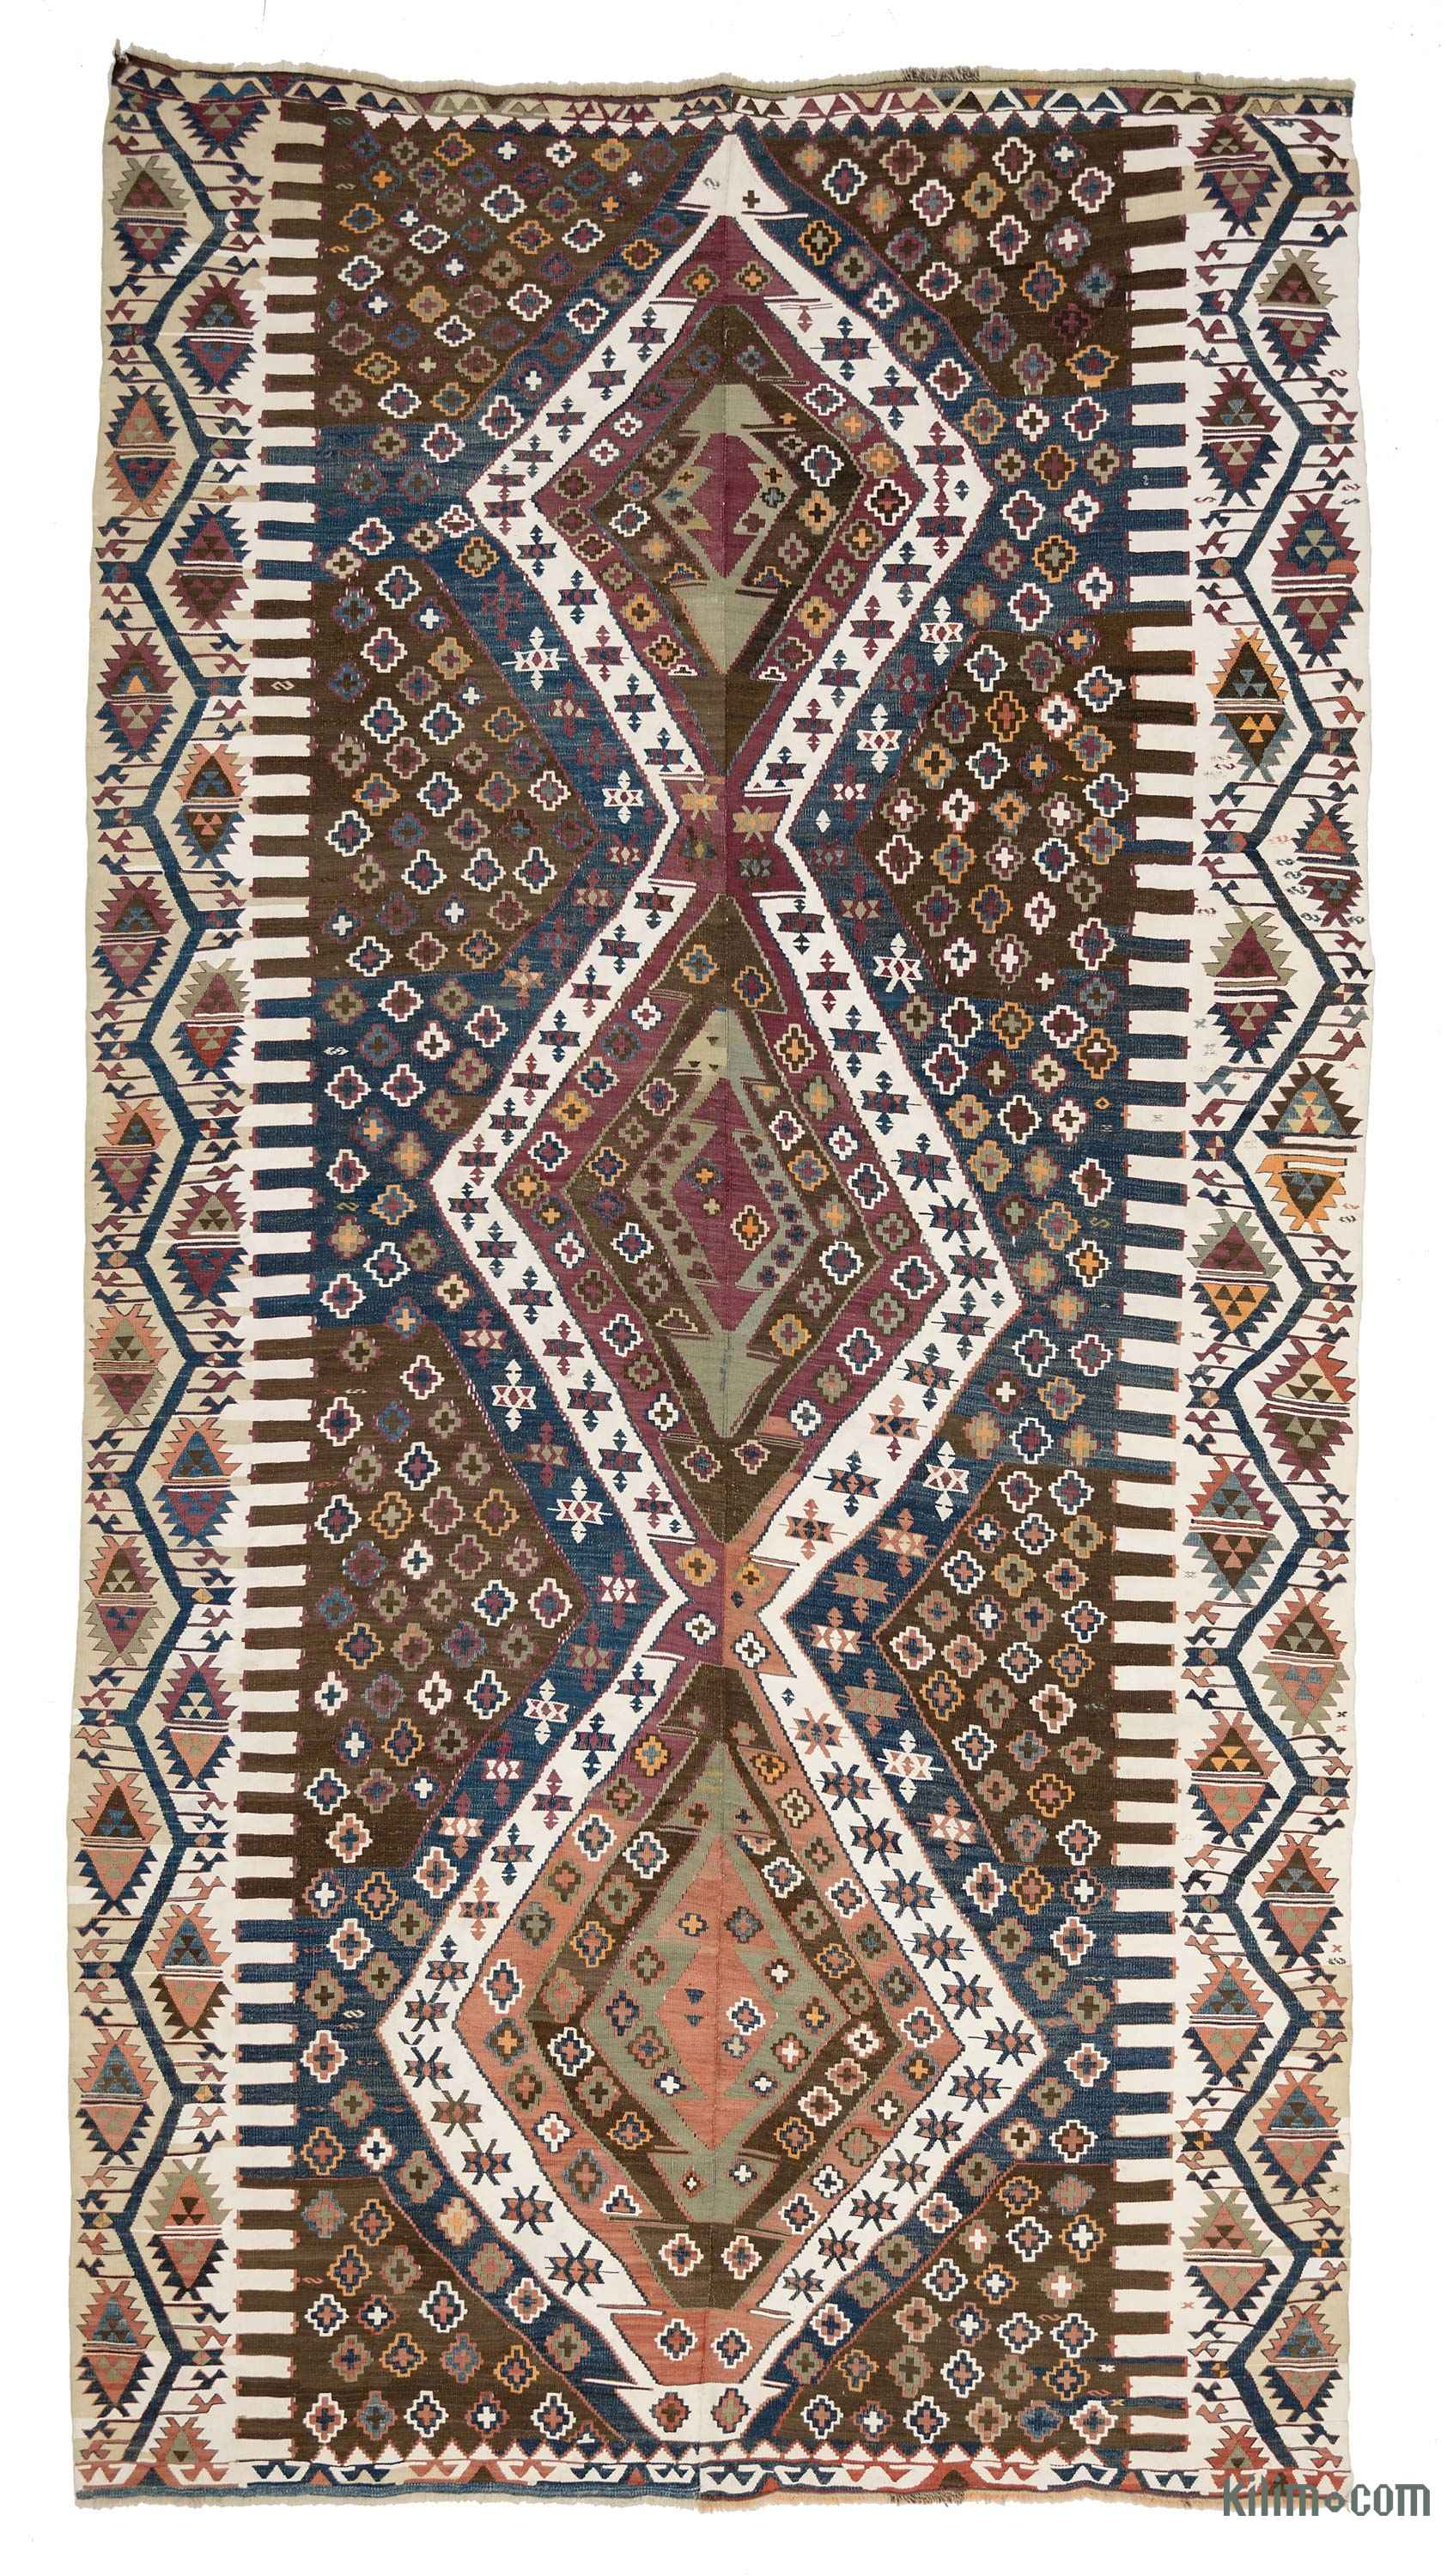 antique malatya kilim k0004335 finest kilims and turkish area rugs. Black Bedroom Furniture Sets. Home Design Ideas